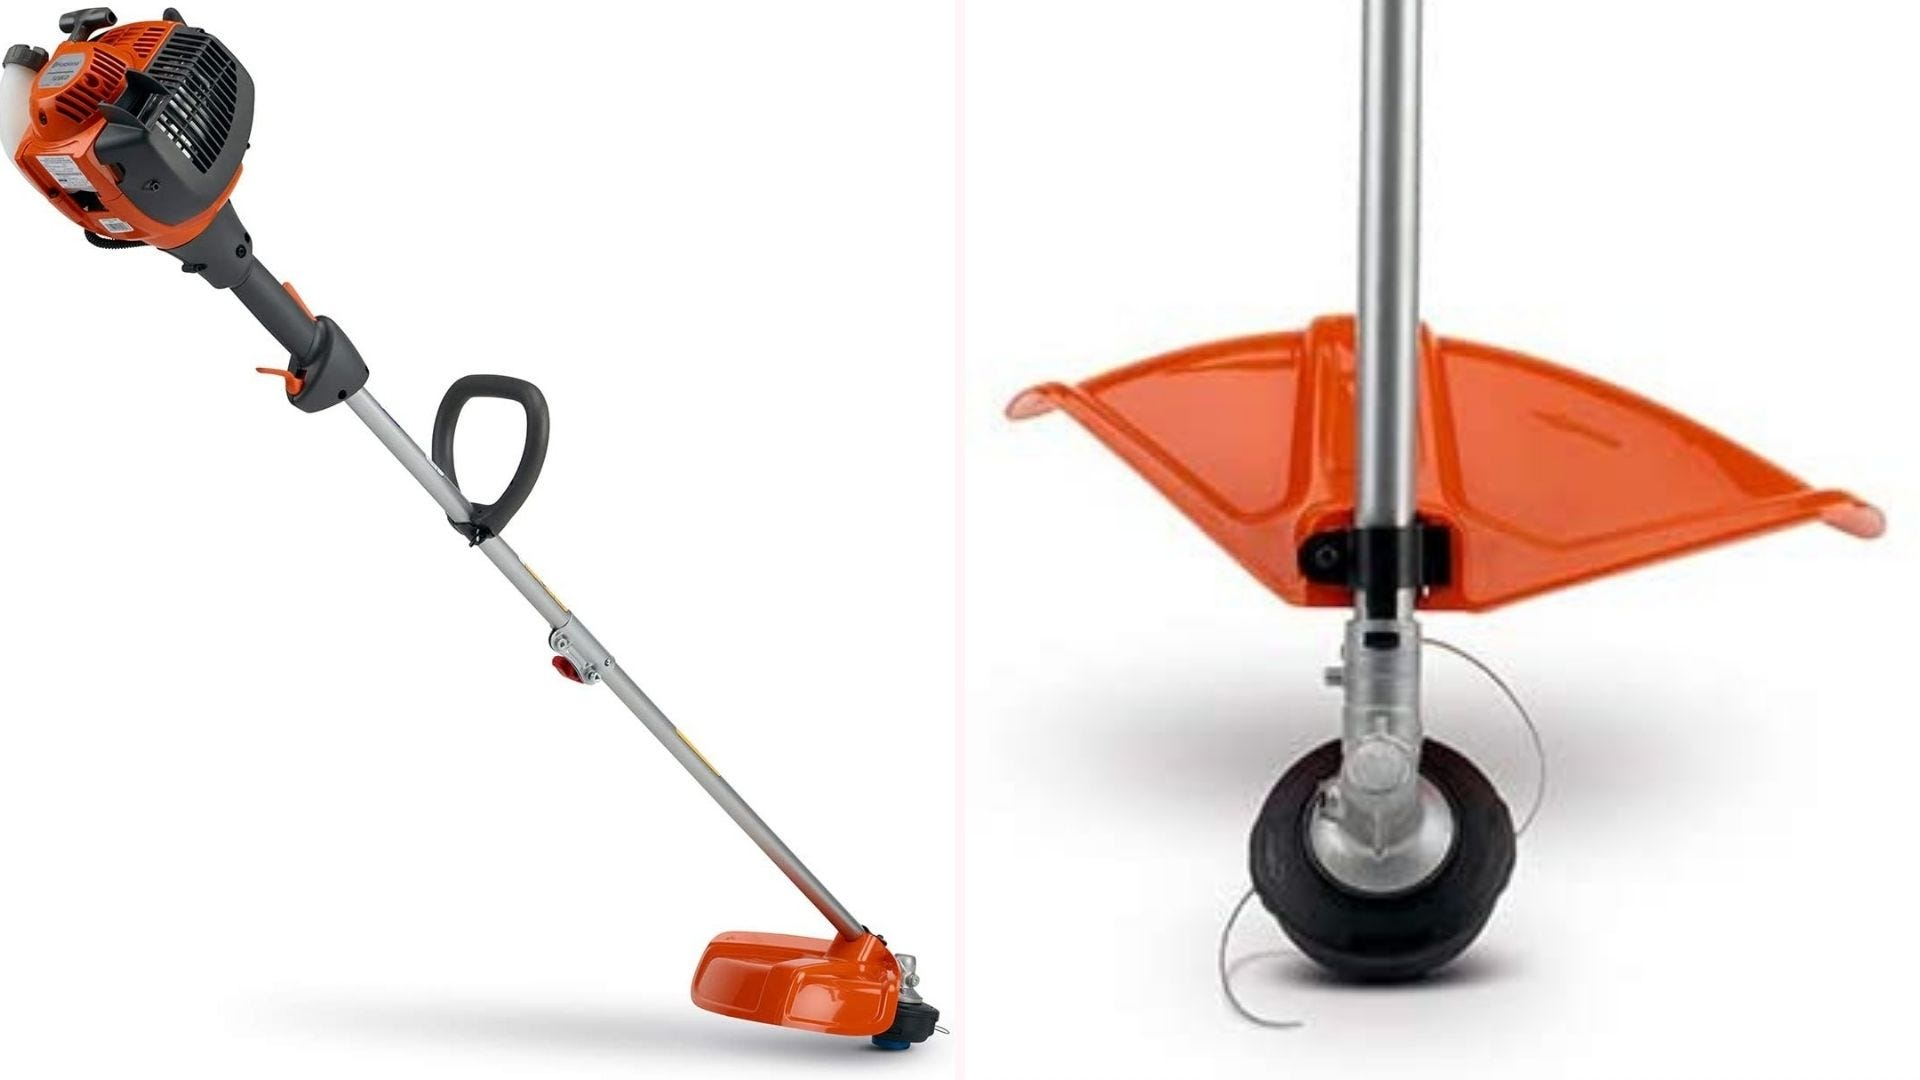 On the left is a full-frame picture of an orange and grey gas-powered trimmer. On the right is a close-up of the device's trimmer head showcasing the two pieces of trimming string that come out of the spool.